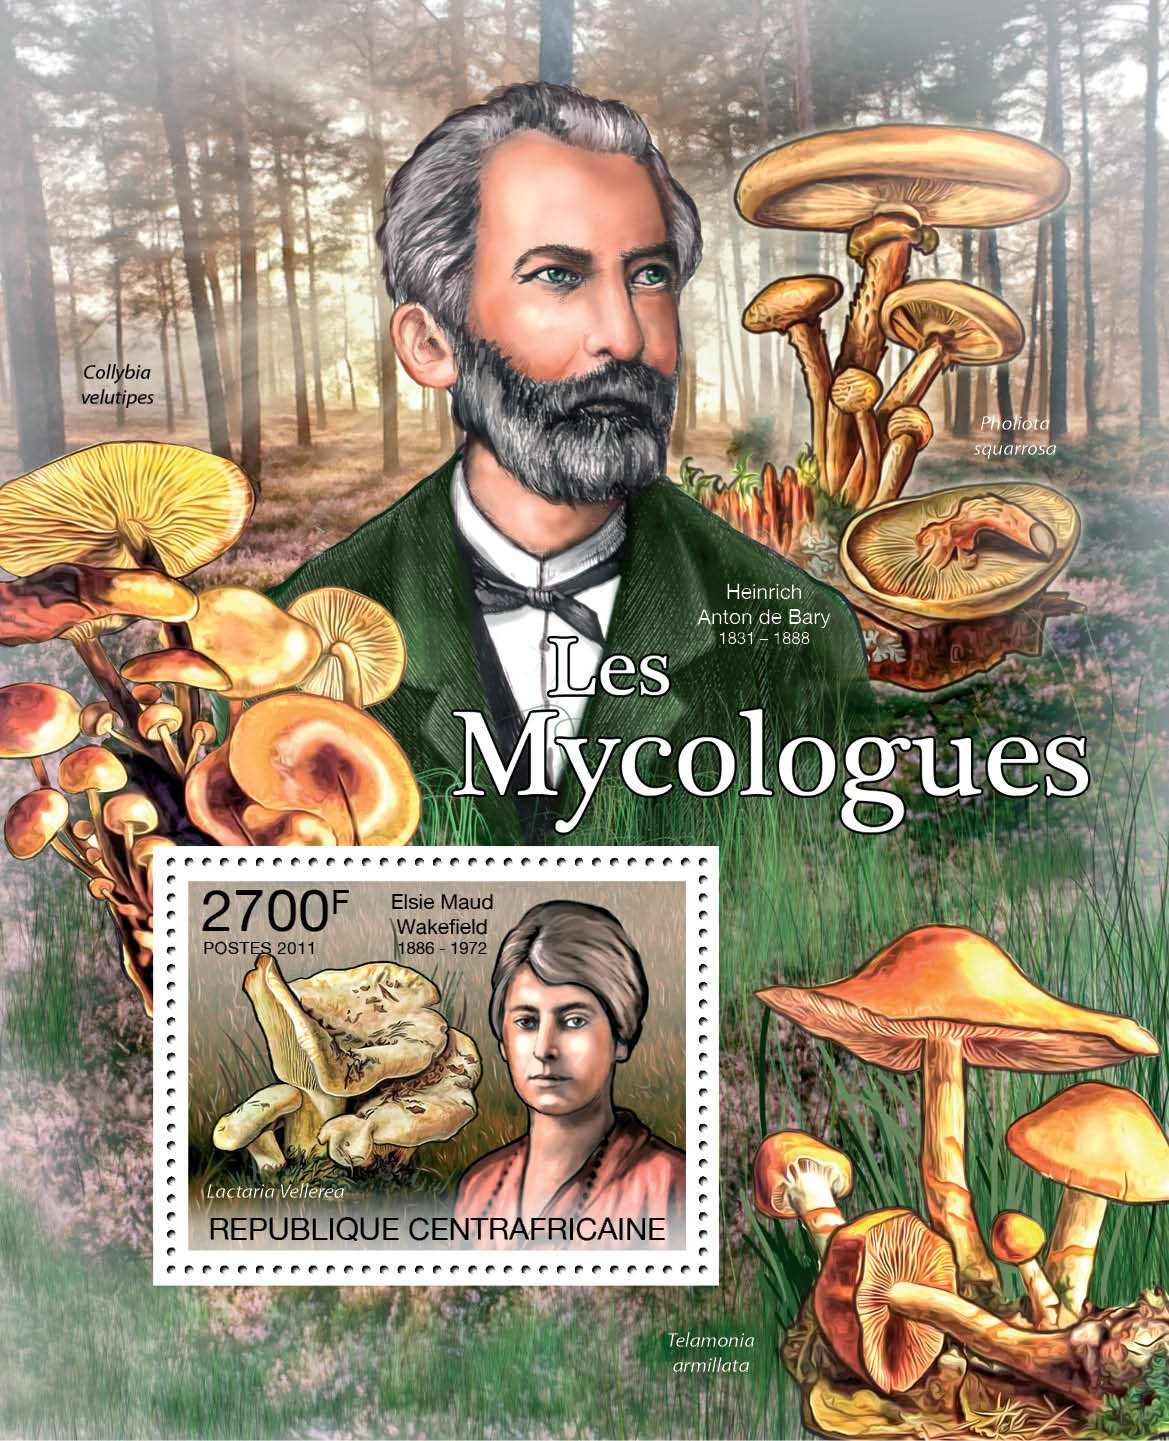 Mycologists & Mushrooms, (E.M.Wakefield). - Issue of Central African republic postage stamps